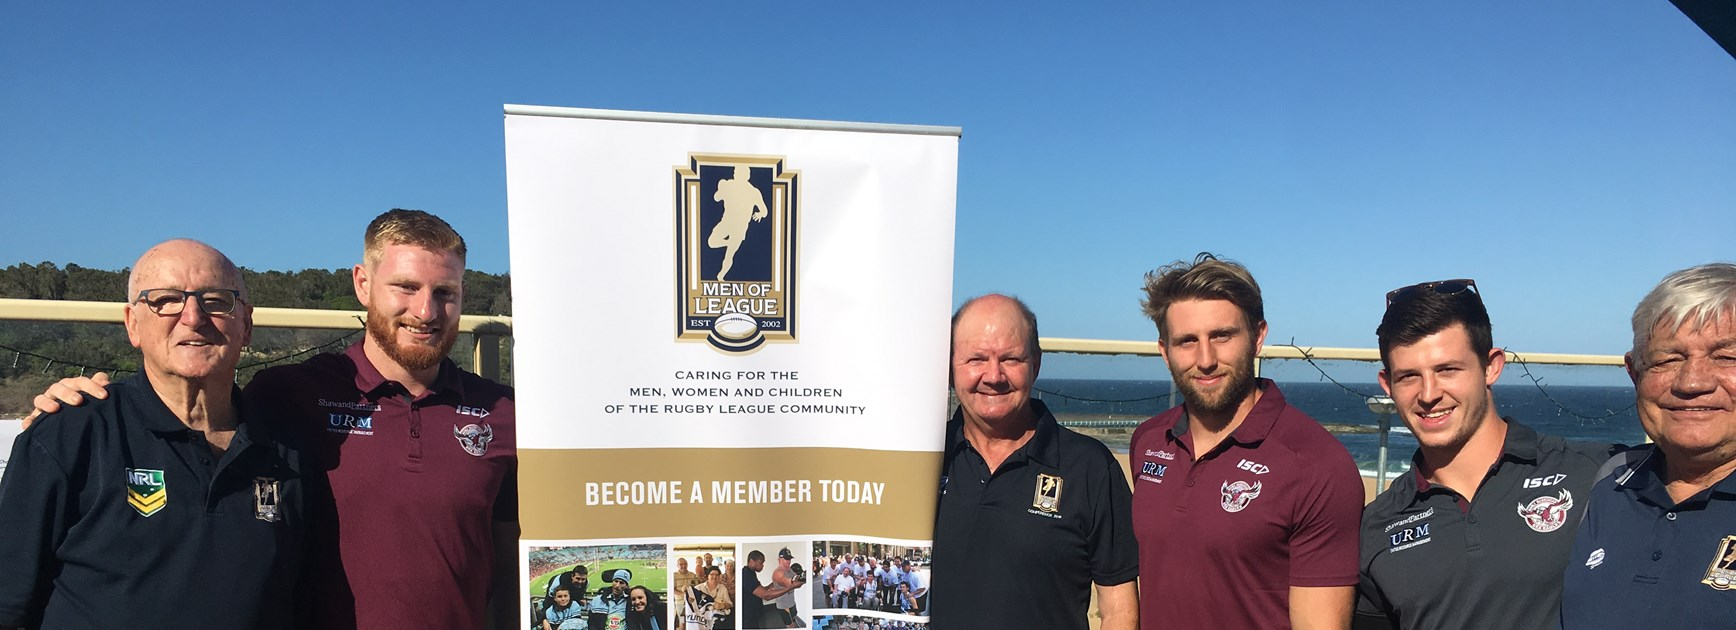 Sea Eagles proud to support Men of League Christmas event